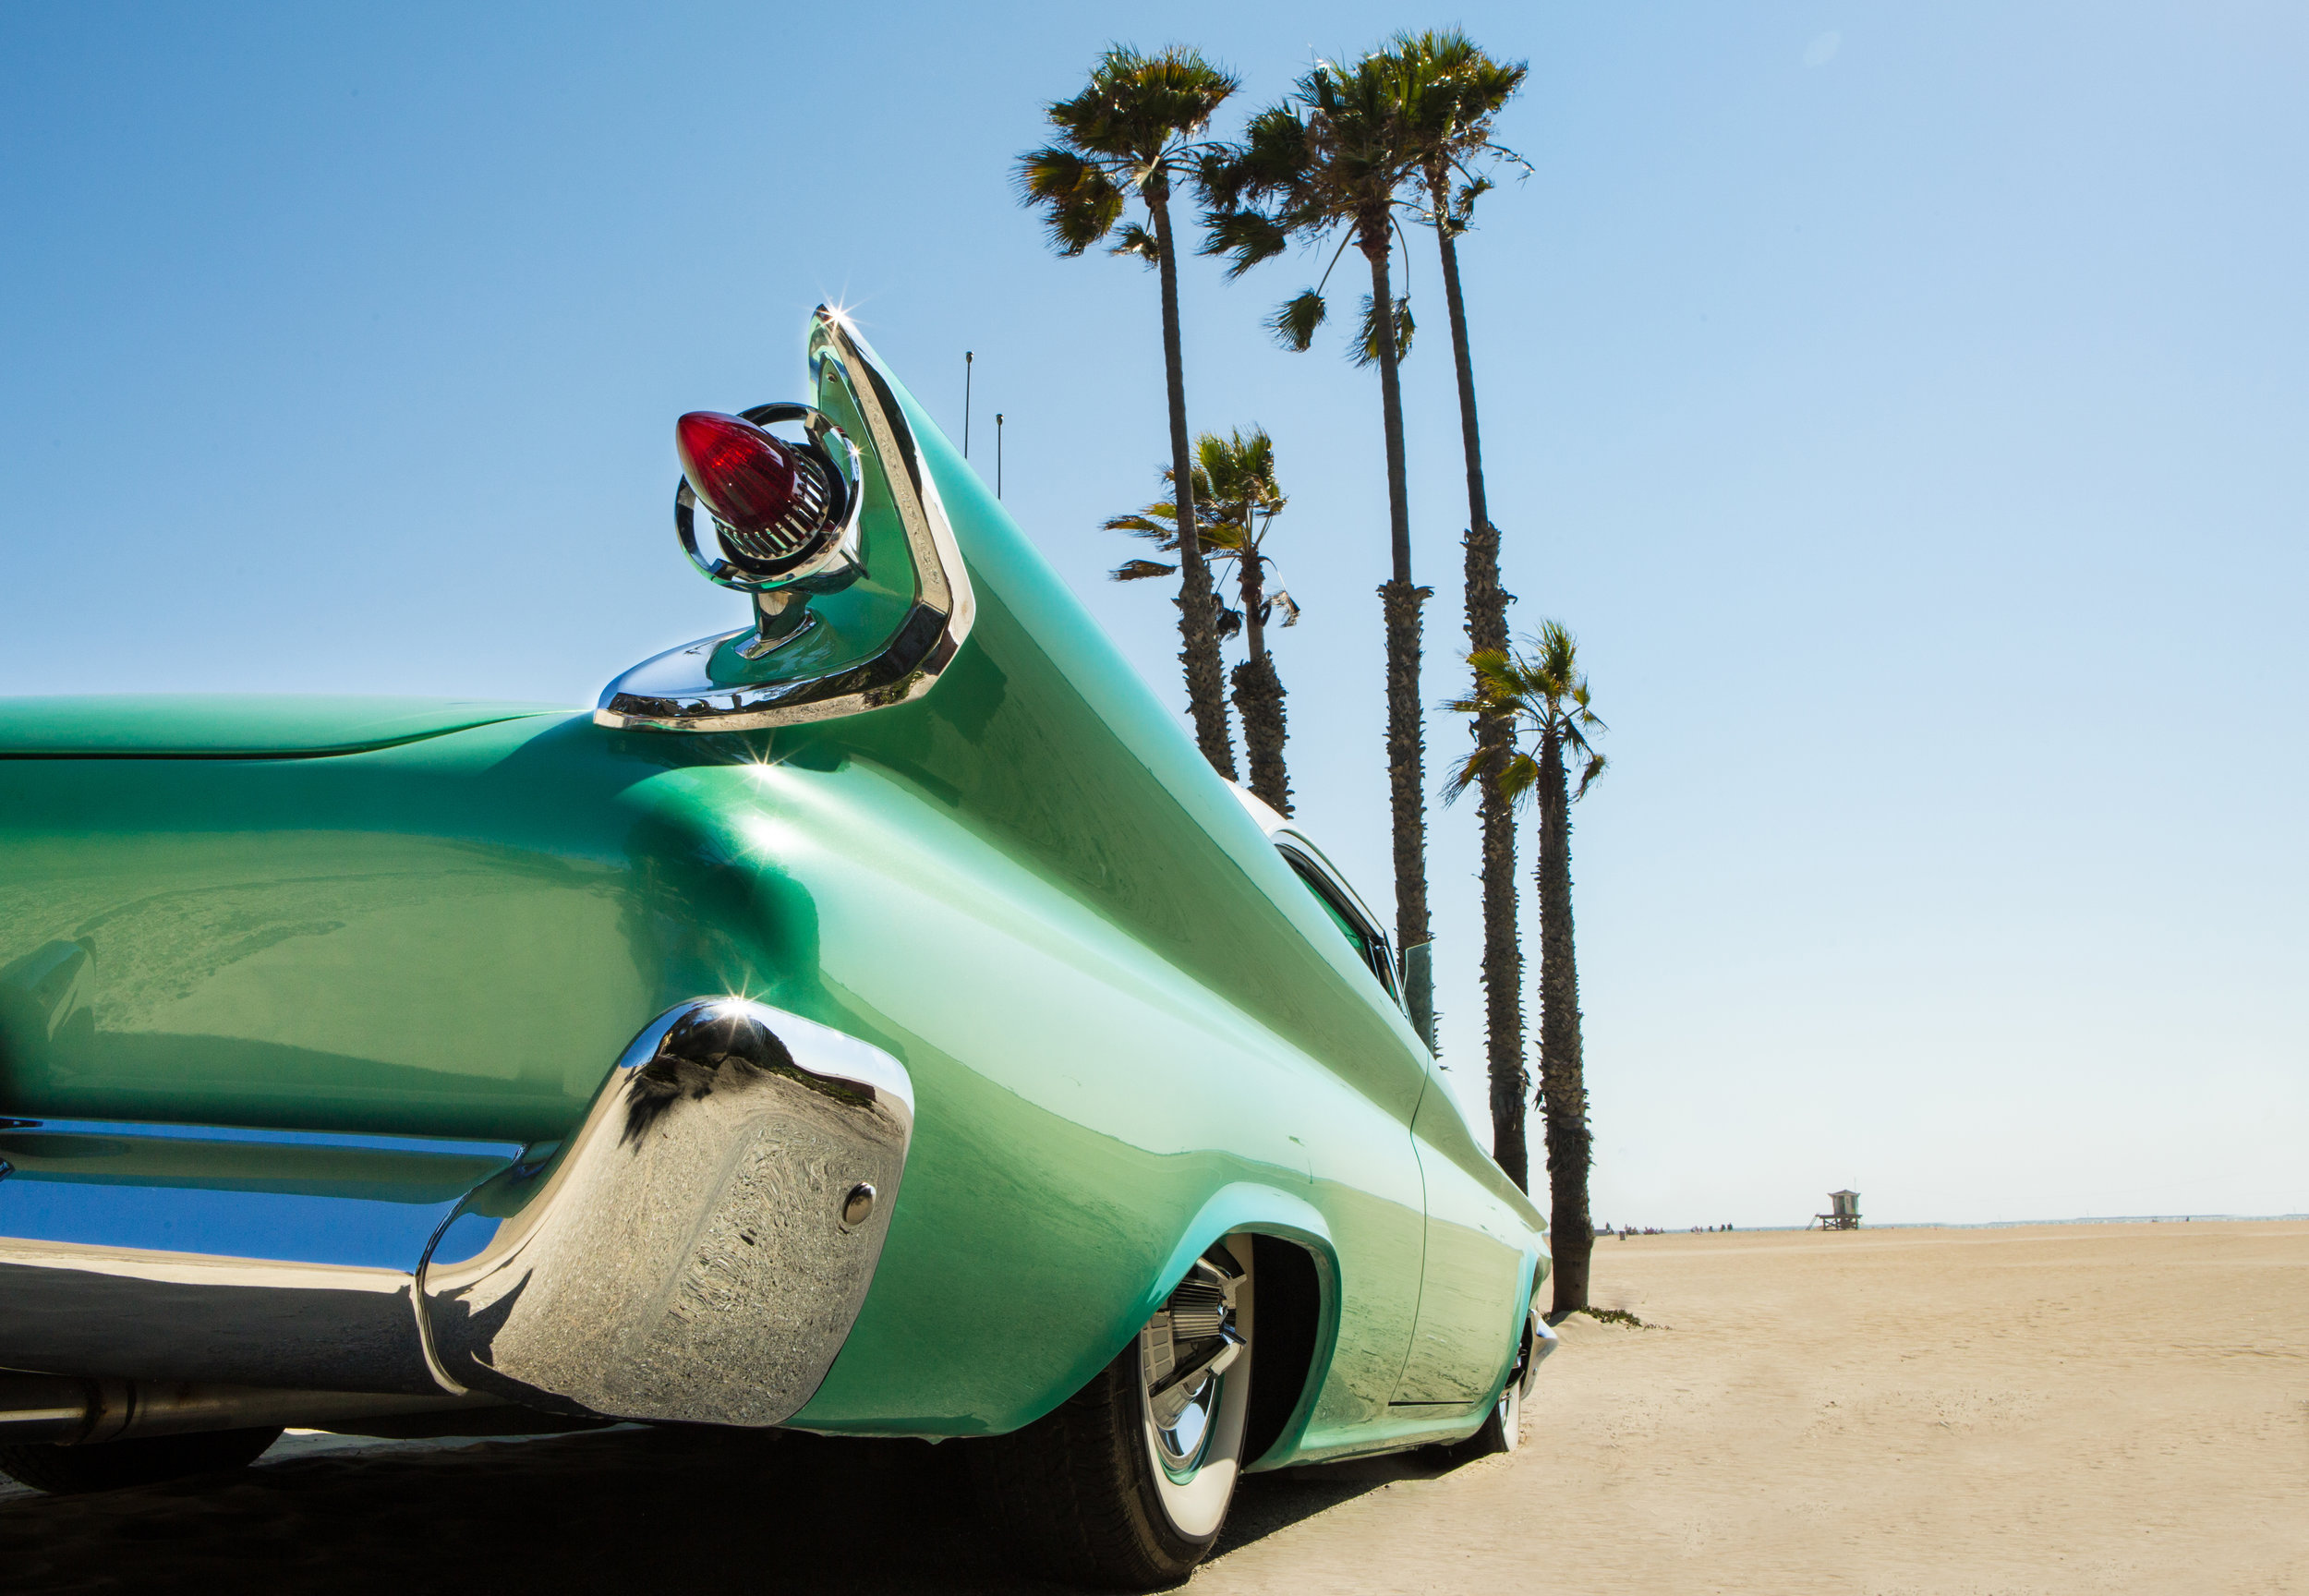 Anaheim Rod and Custom Island Girl 1960 De Soto (1 of 1)-3.jpg